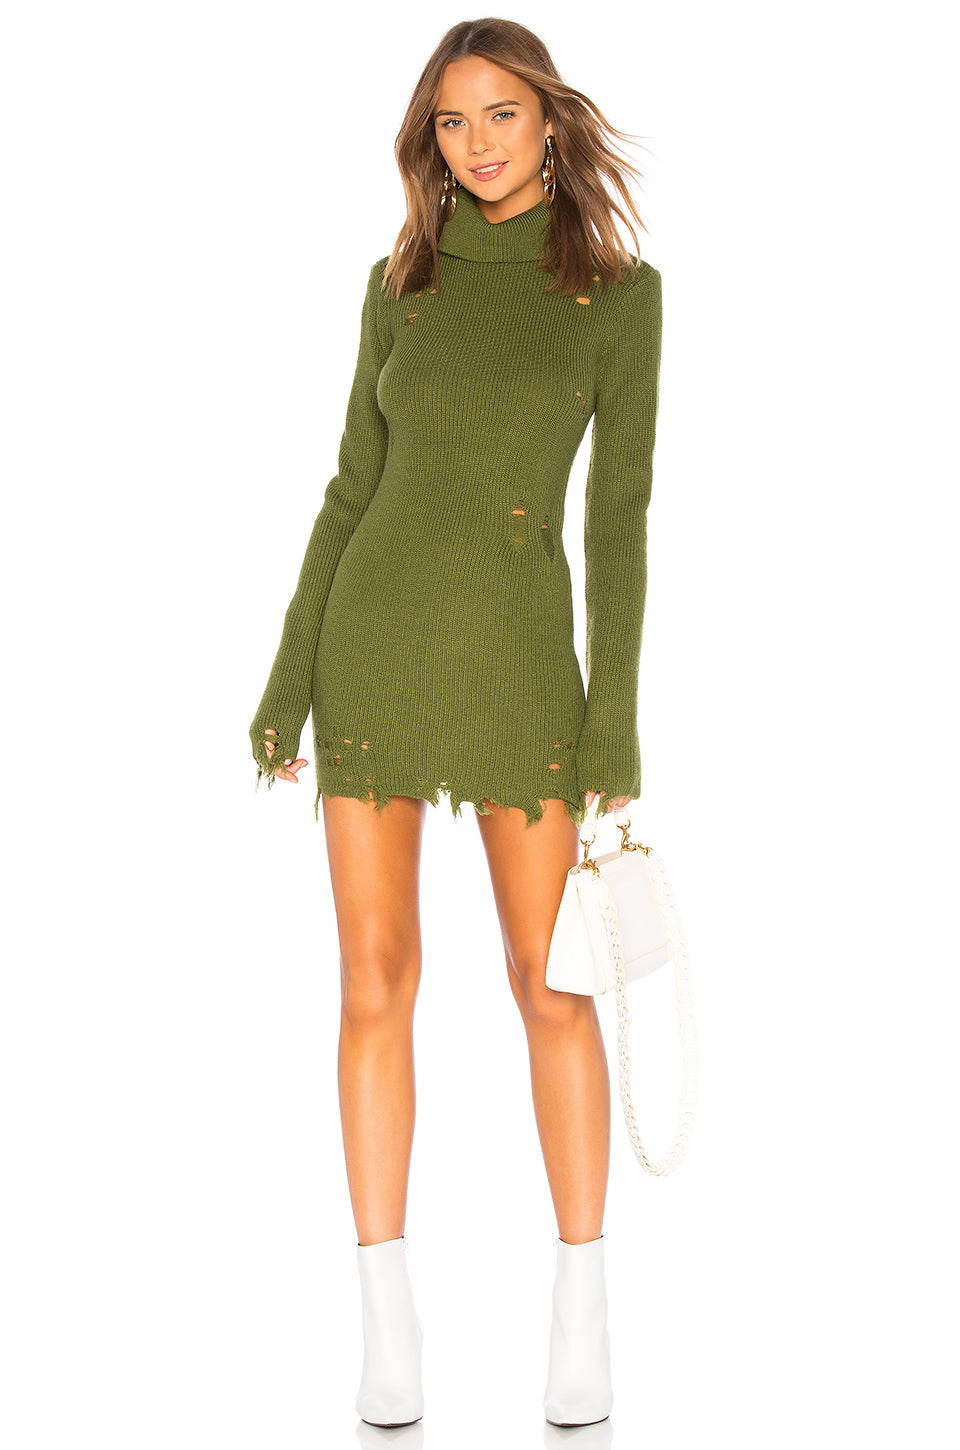 Keeney Mini Sweater Dress in Army Green